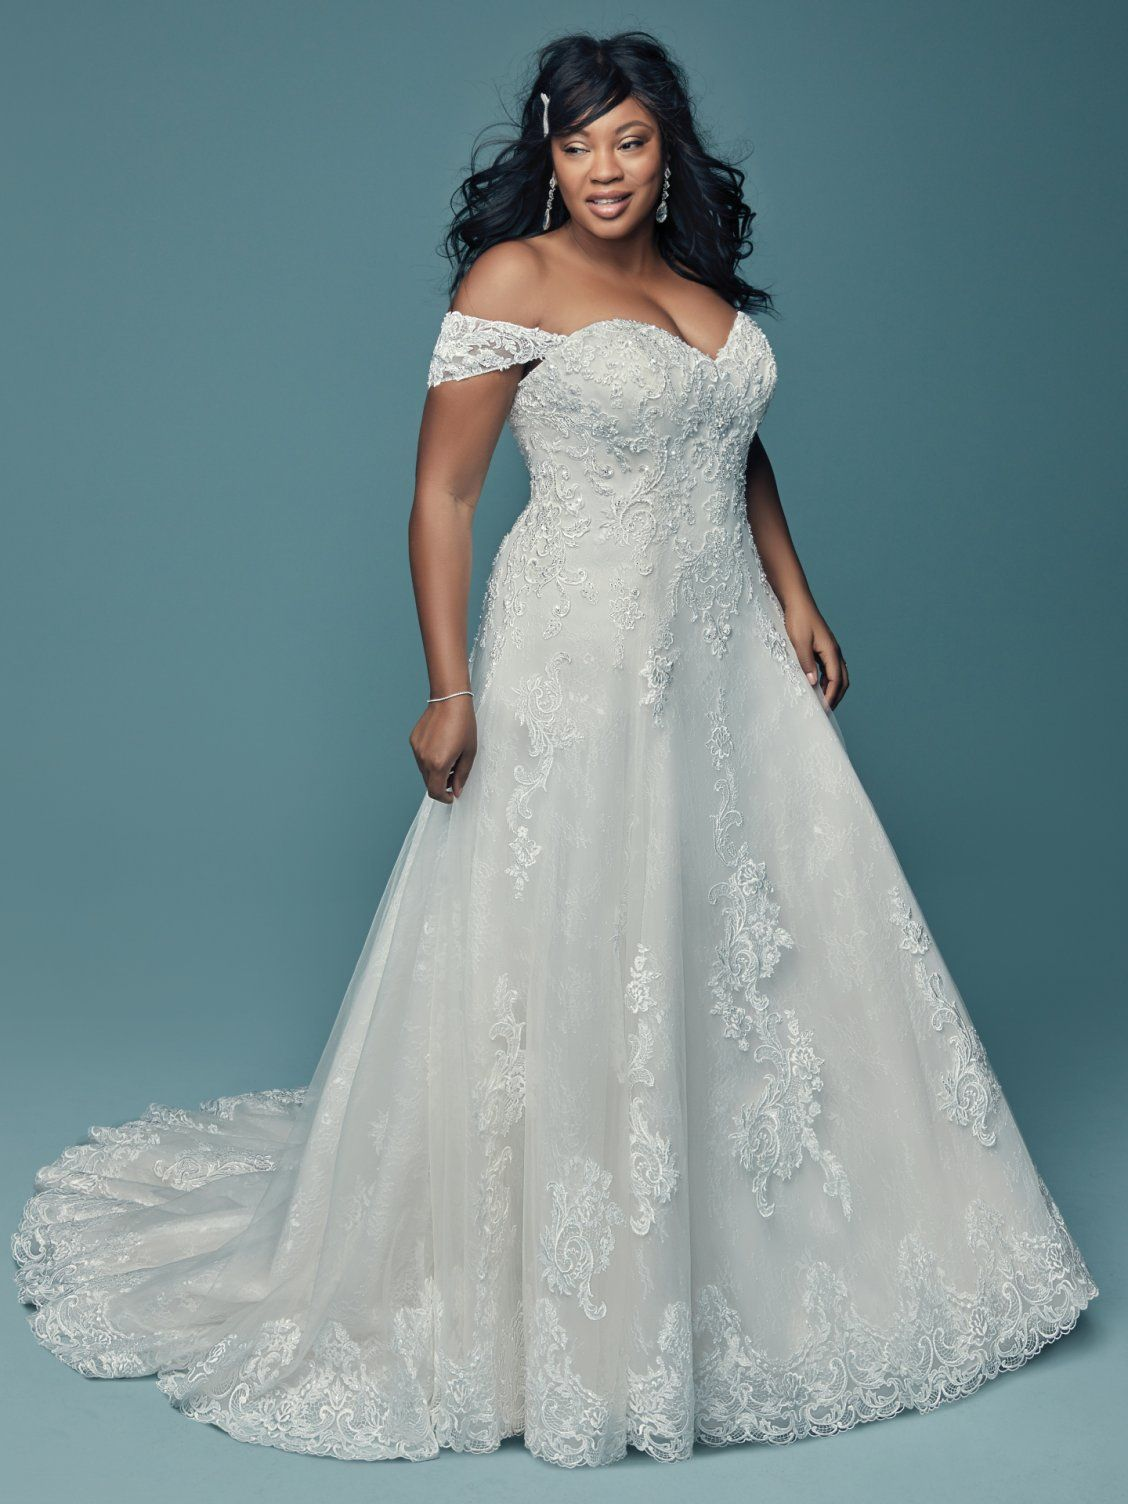 5e0ecad183aad Maggie Sottero - GAIL - A-line wedding dress A stunning and ultra elegant  classic with modern twist!